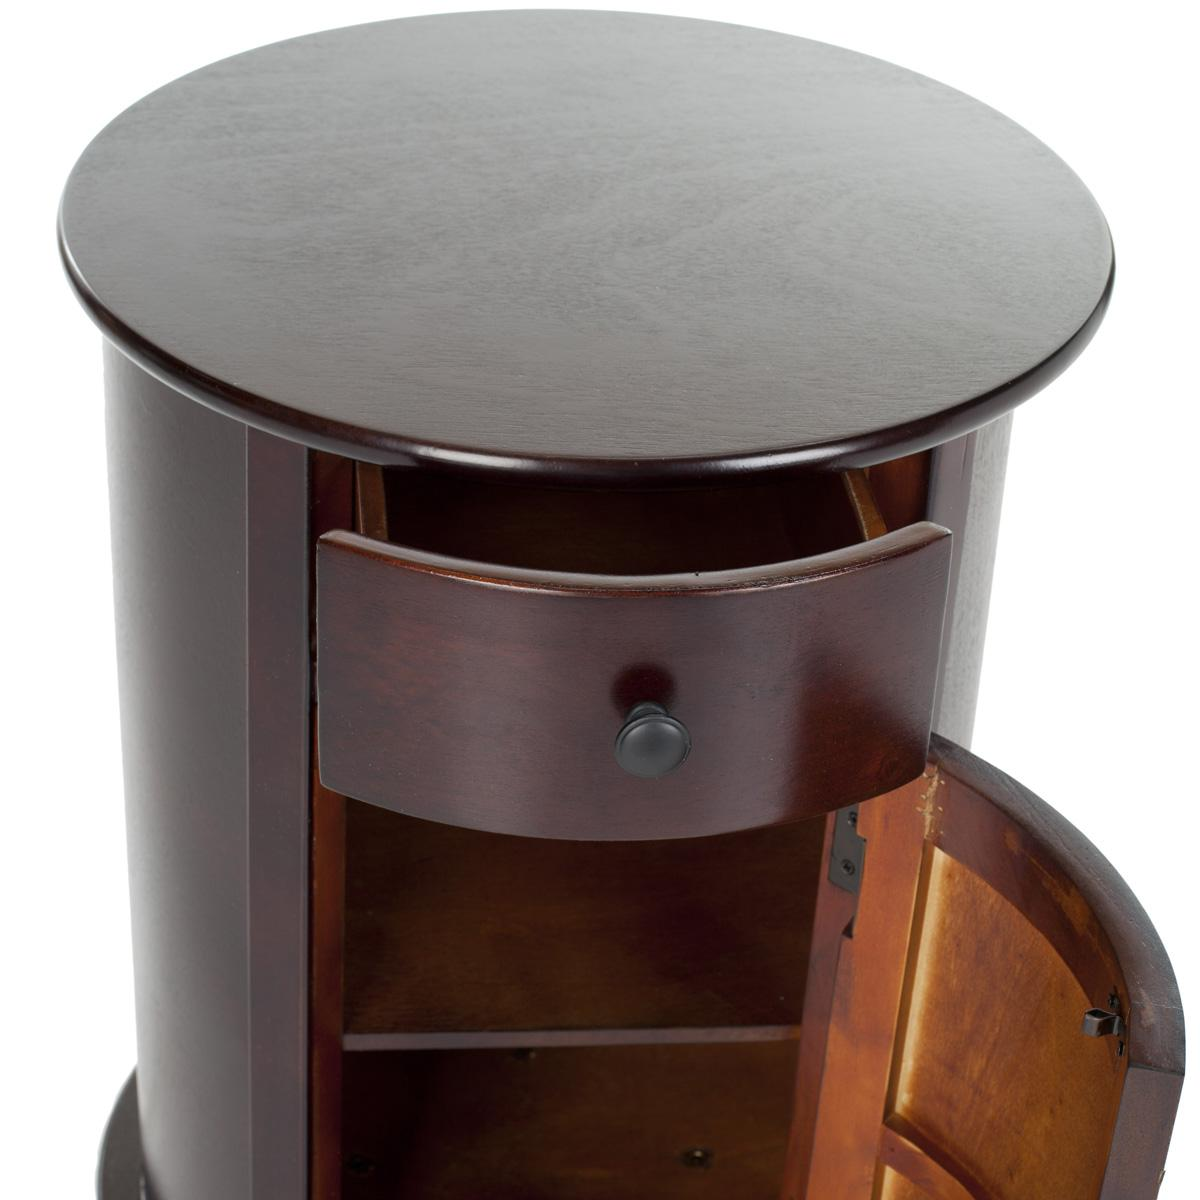 AMH5712D Accent Tables Storage Furniture Furniture by Safavieh